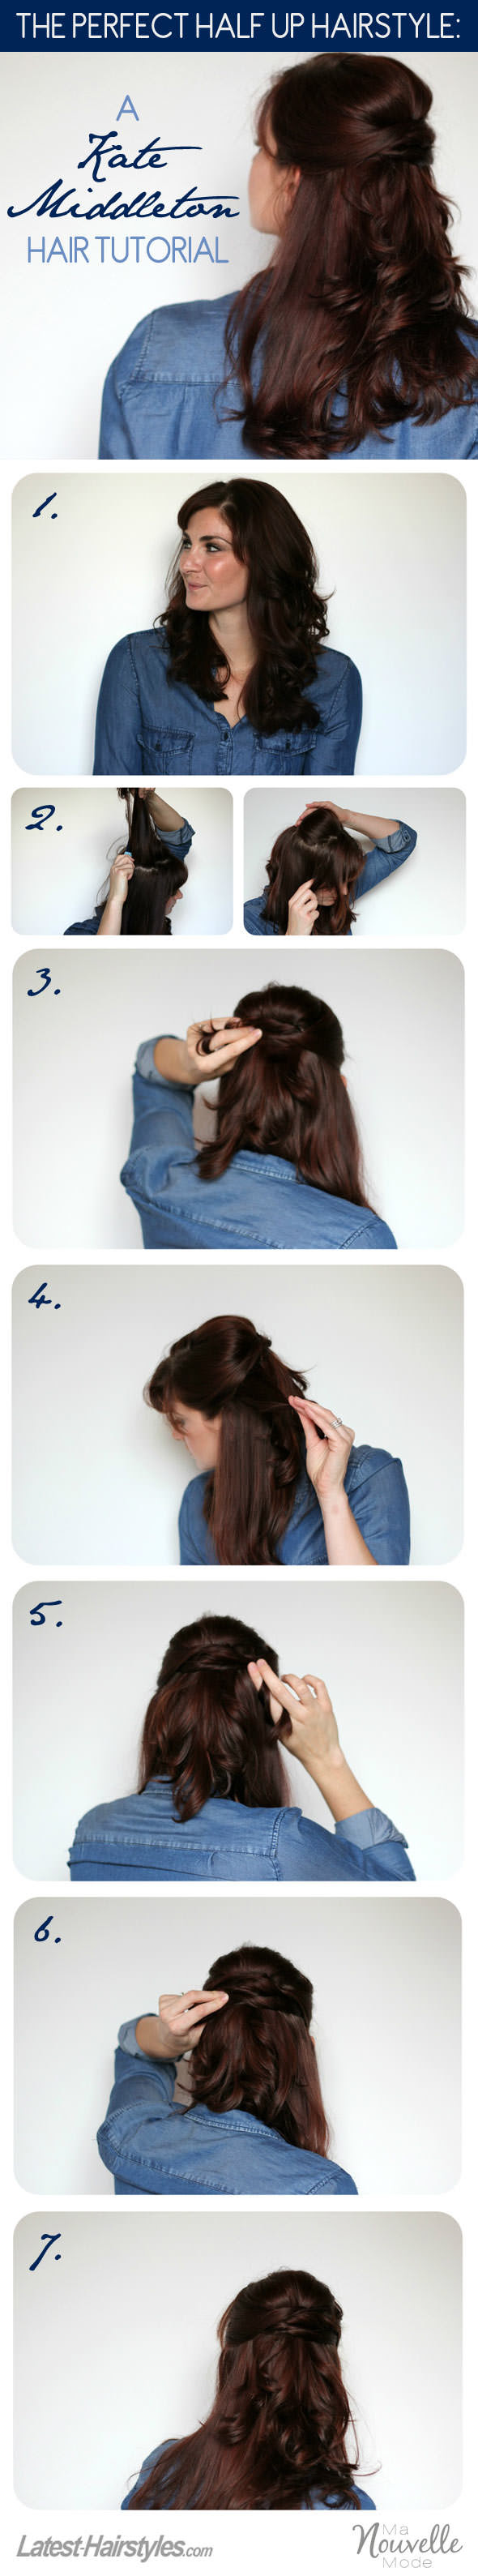 Kate Middleton's half up hair style tutorial